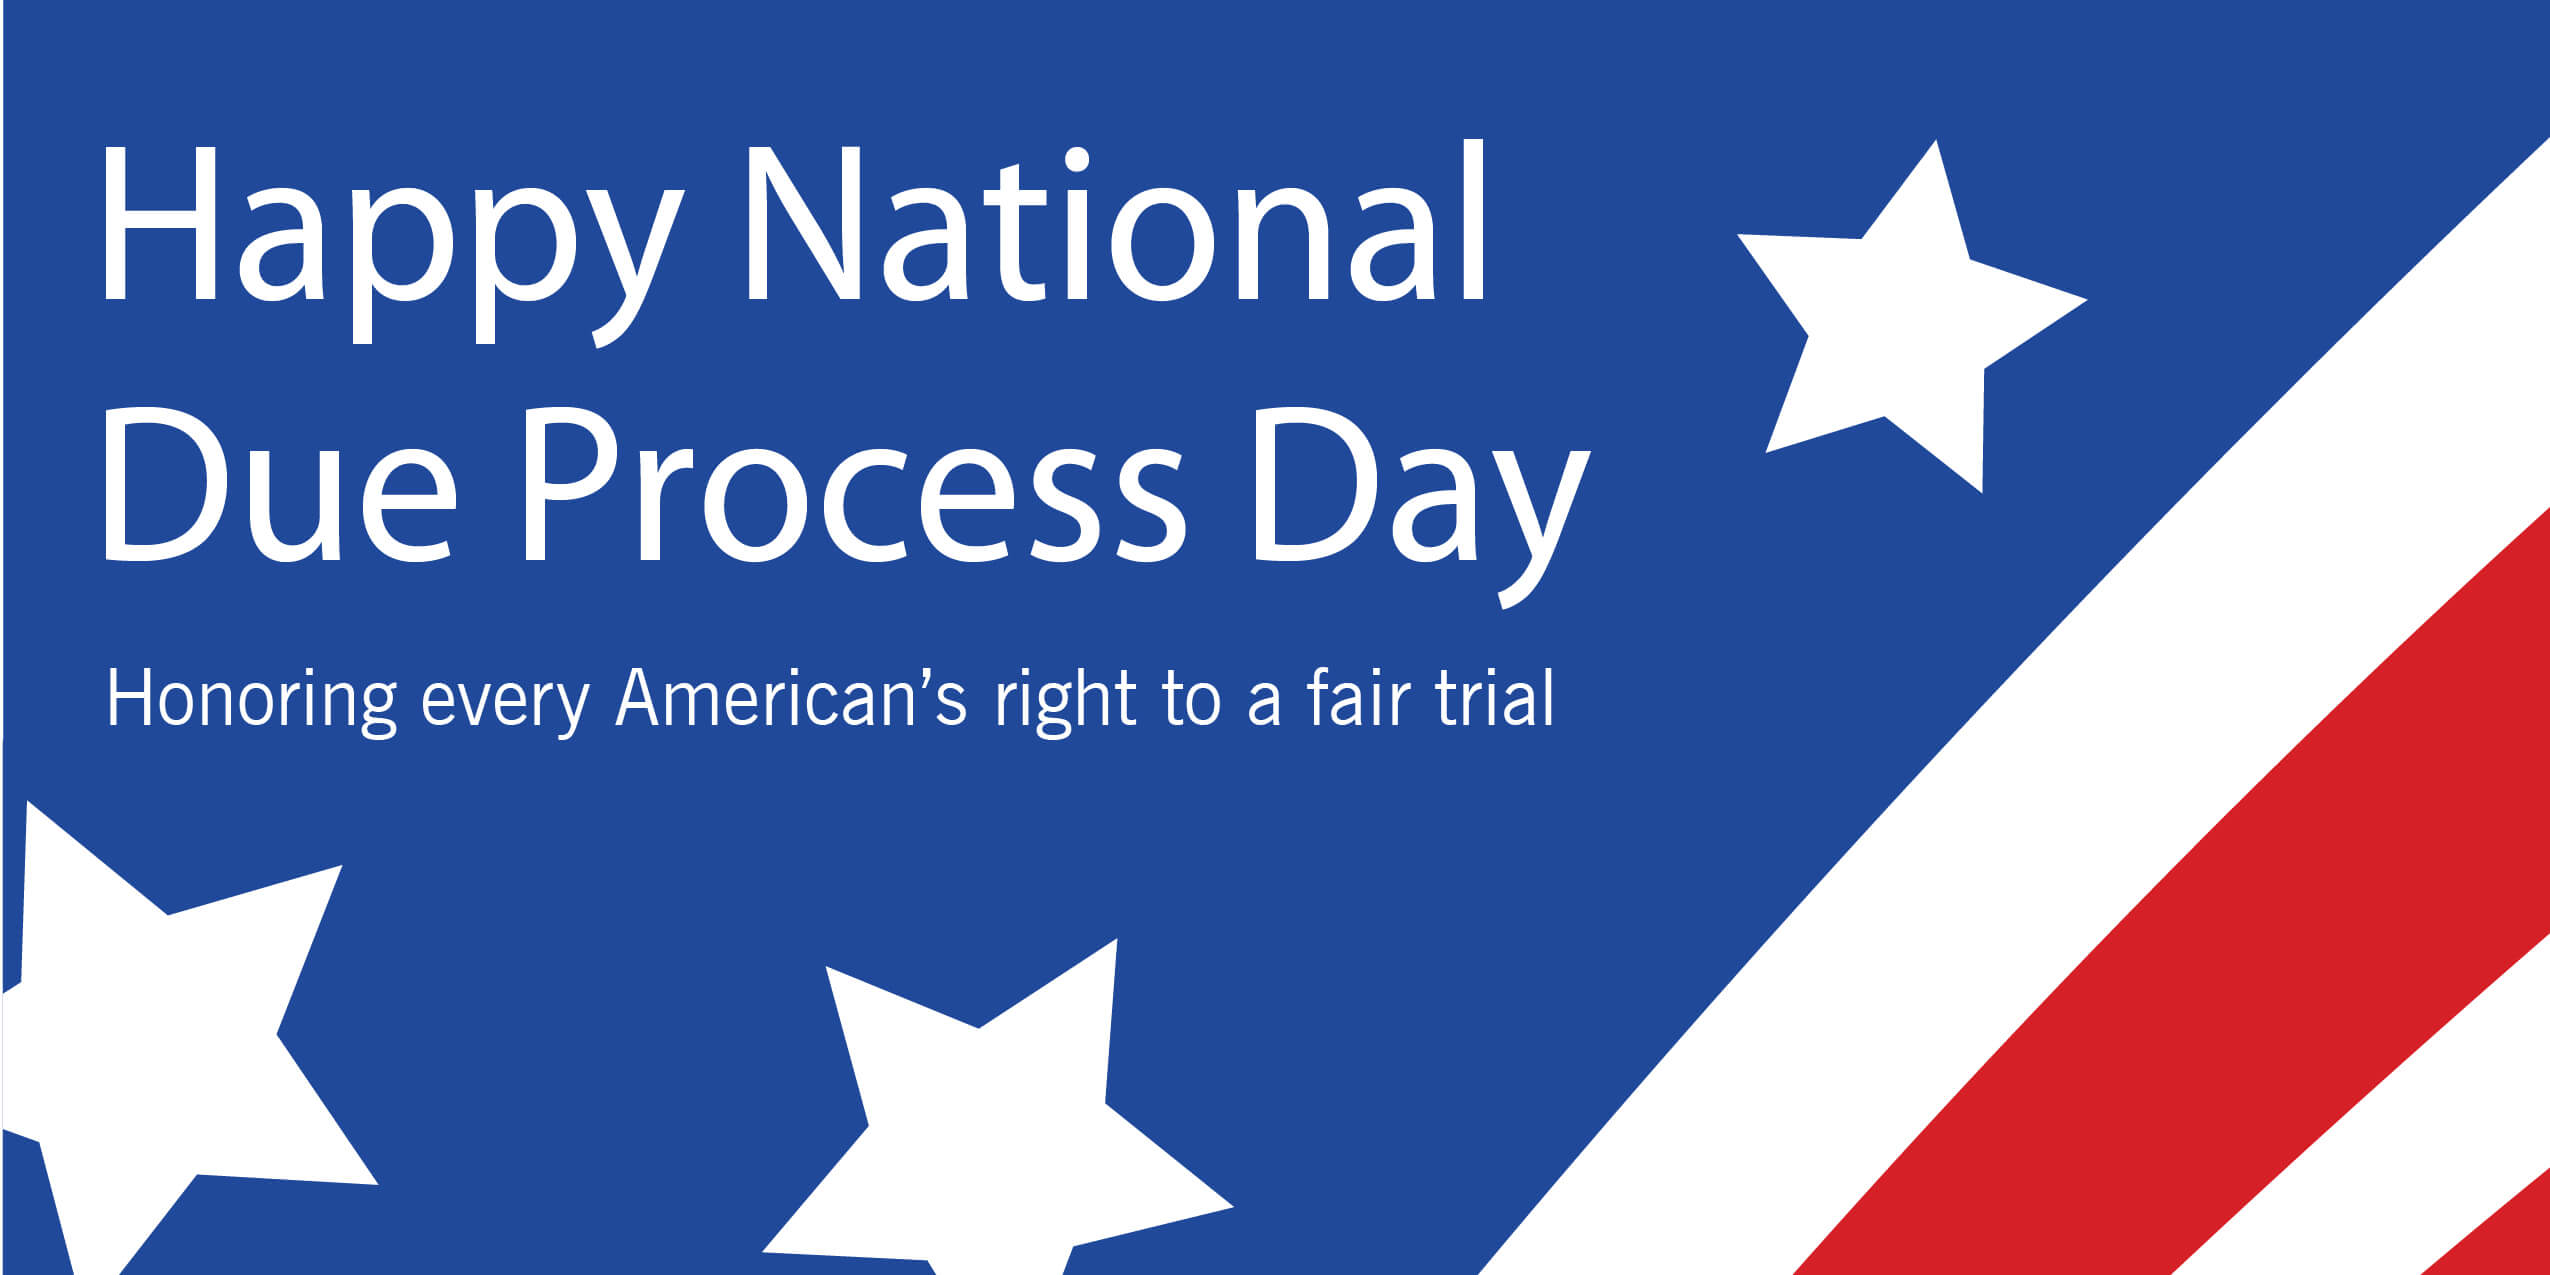 National Due Process Day